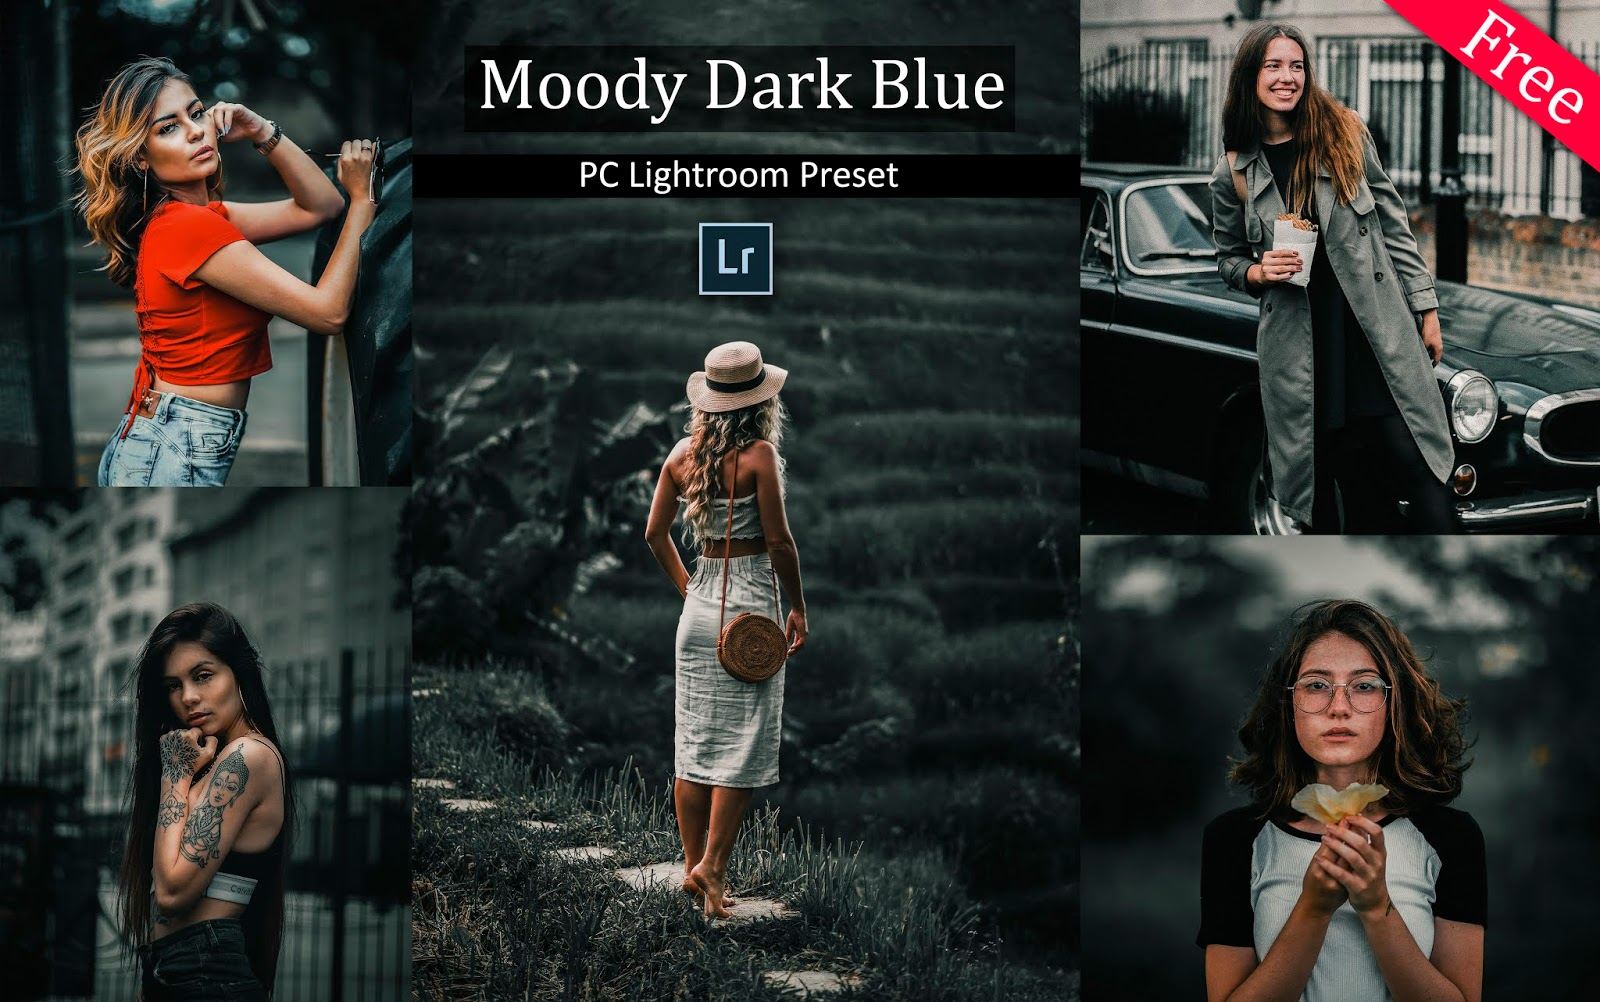 Download Moody Dark Blue Lightroom Presets for Free | How to Edit Dark Blue Tones in Lightroom